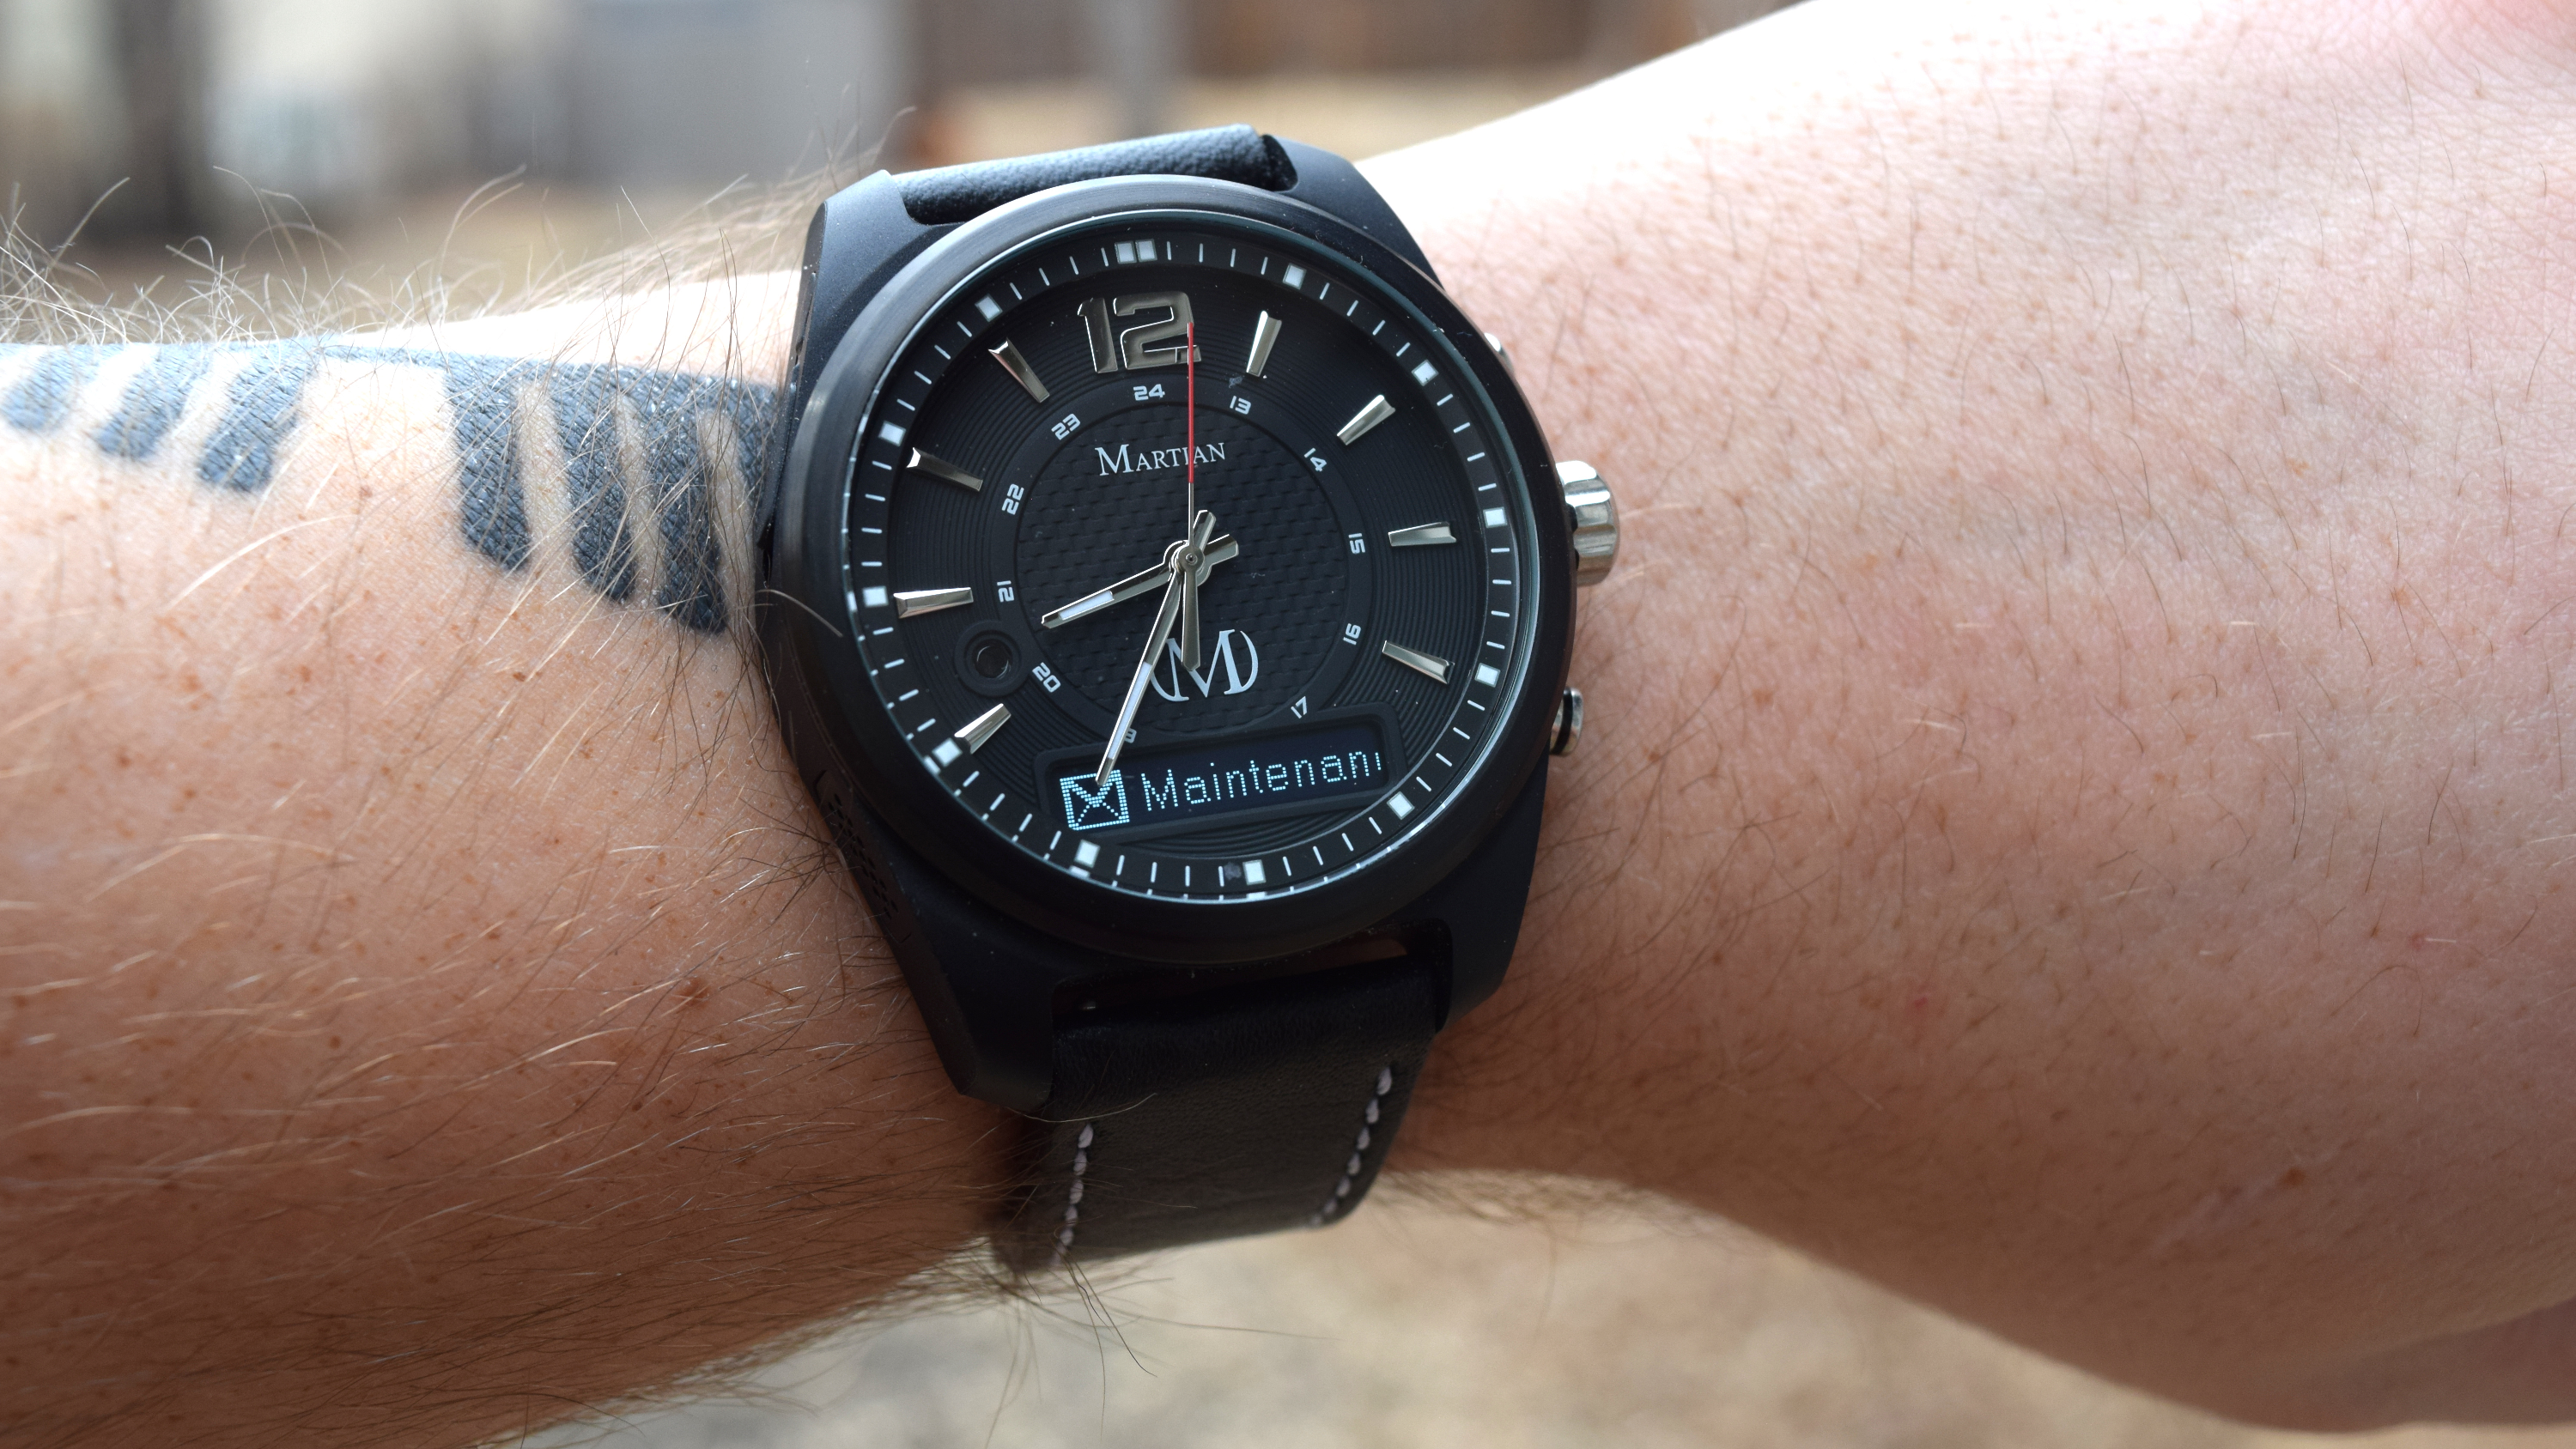 Martian mVoice smartwatch review: Having all of the ...